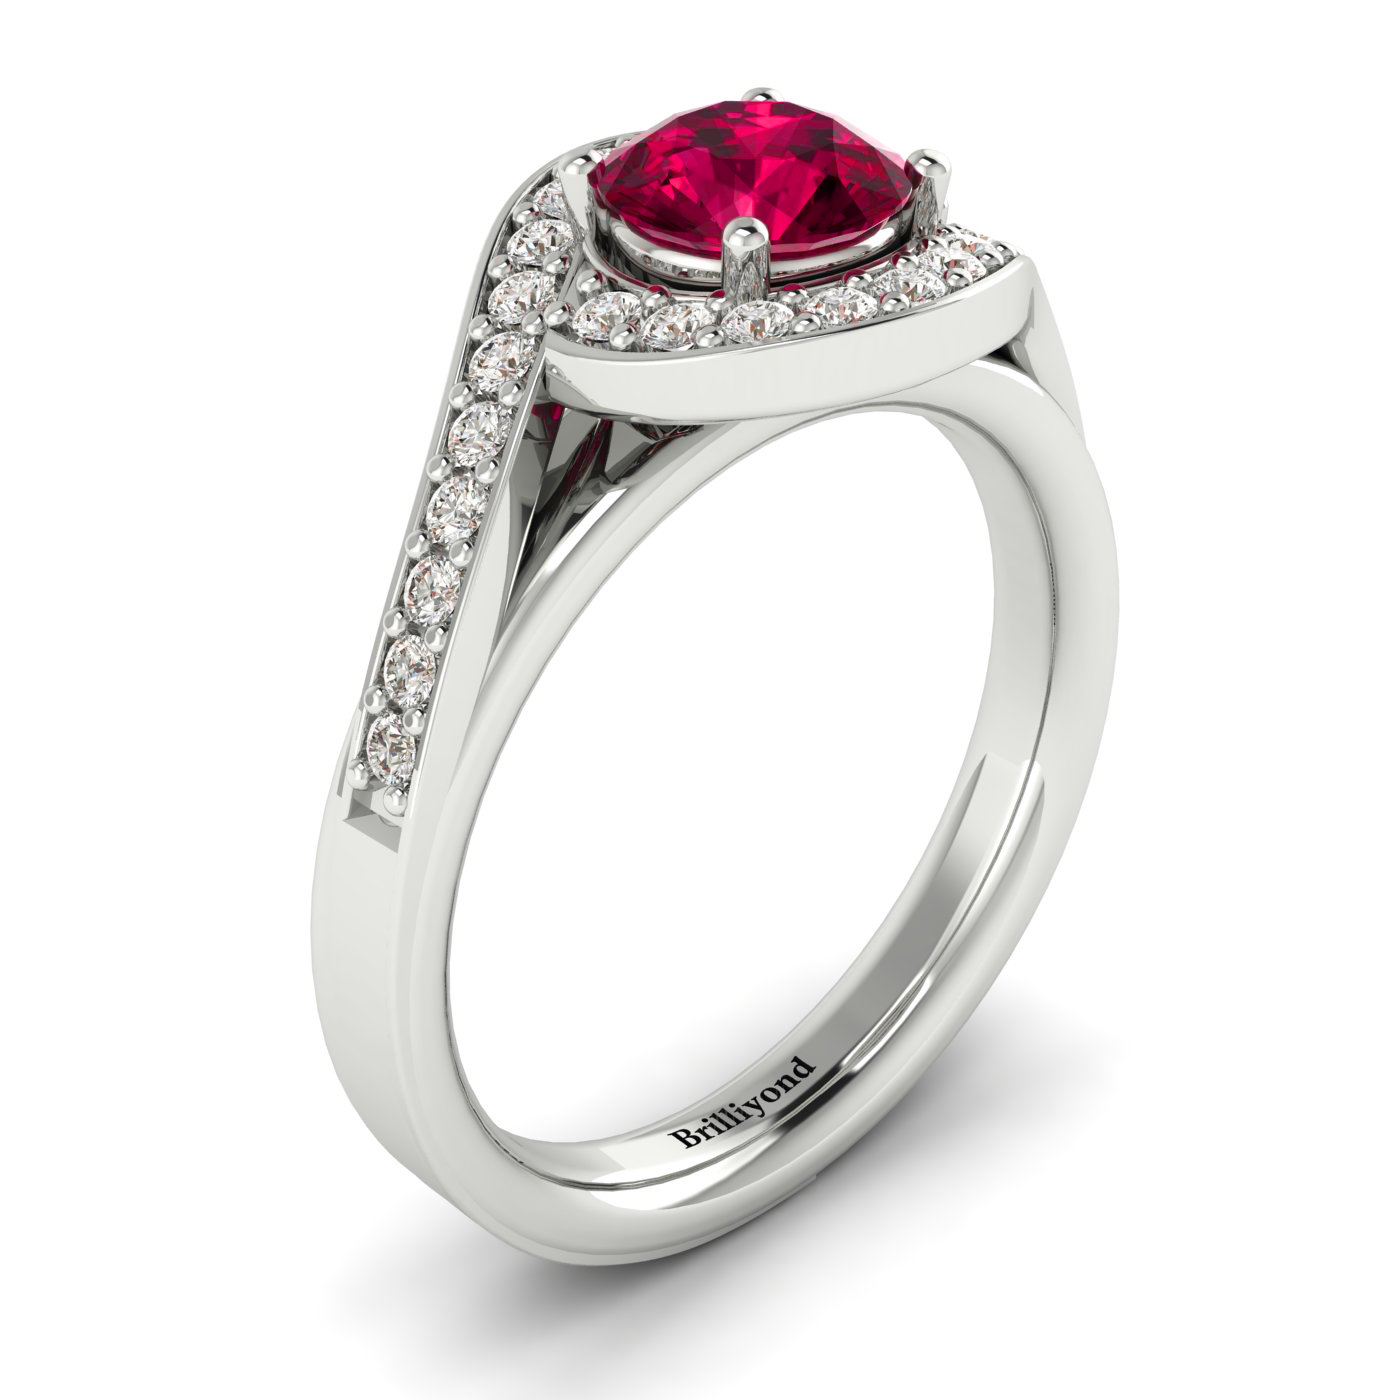 Princess Cut Ruby on 18k White Gold